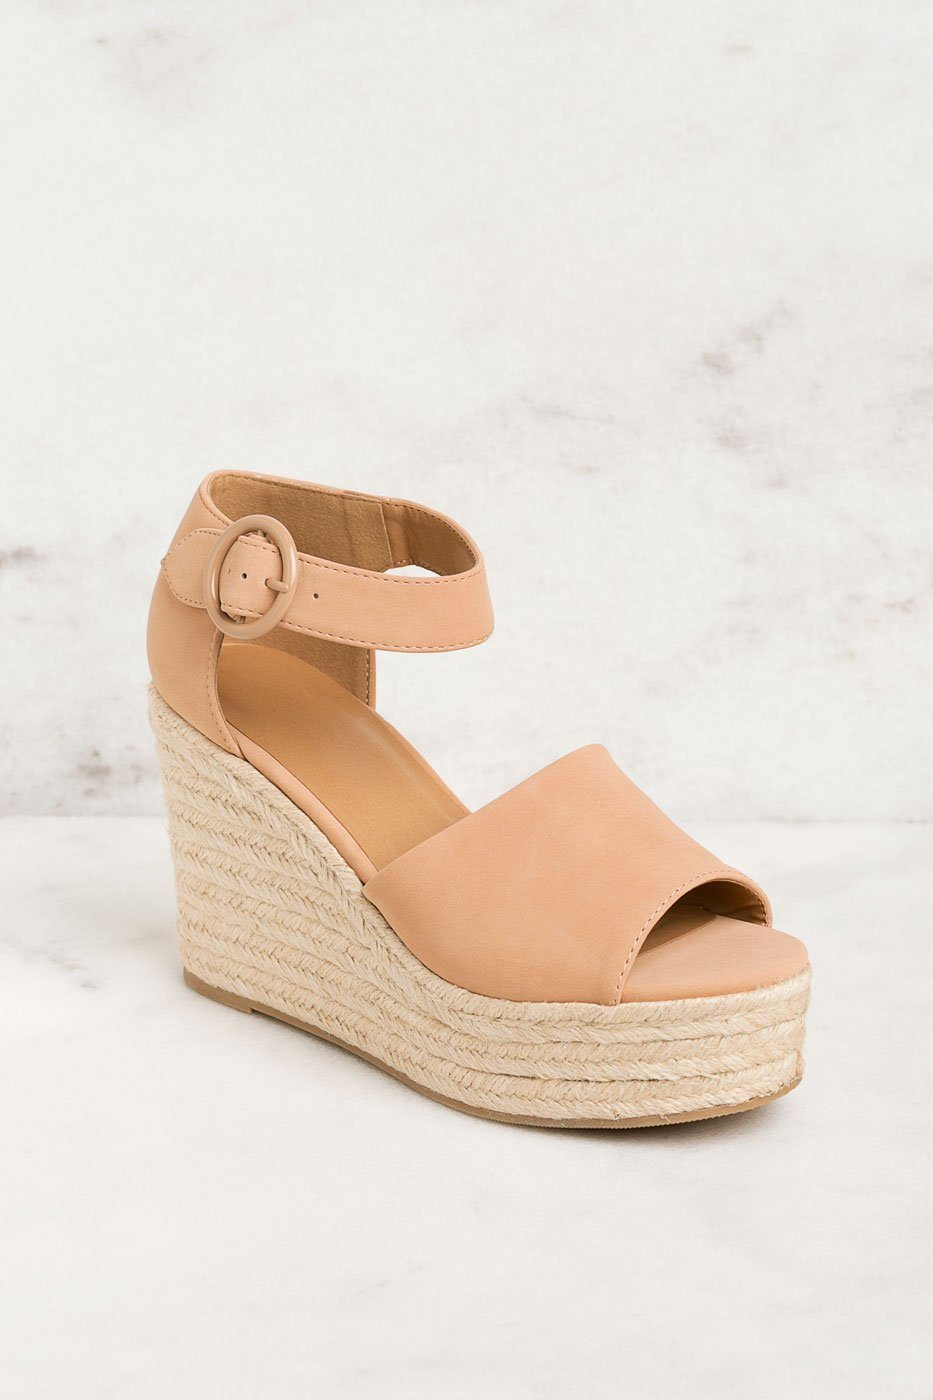 013a79c05 ... Priceless | Light Tan | Wedges | Shoes | Womens ...